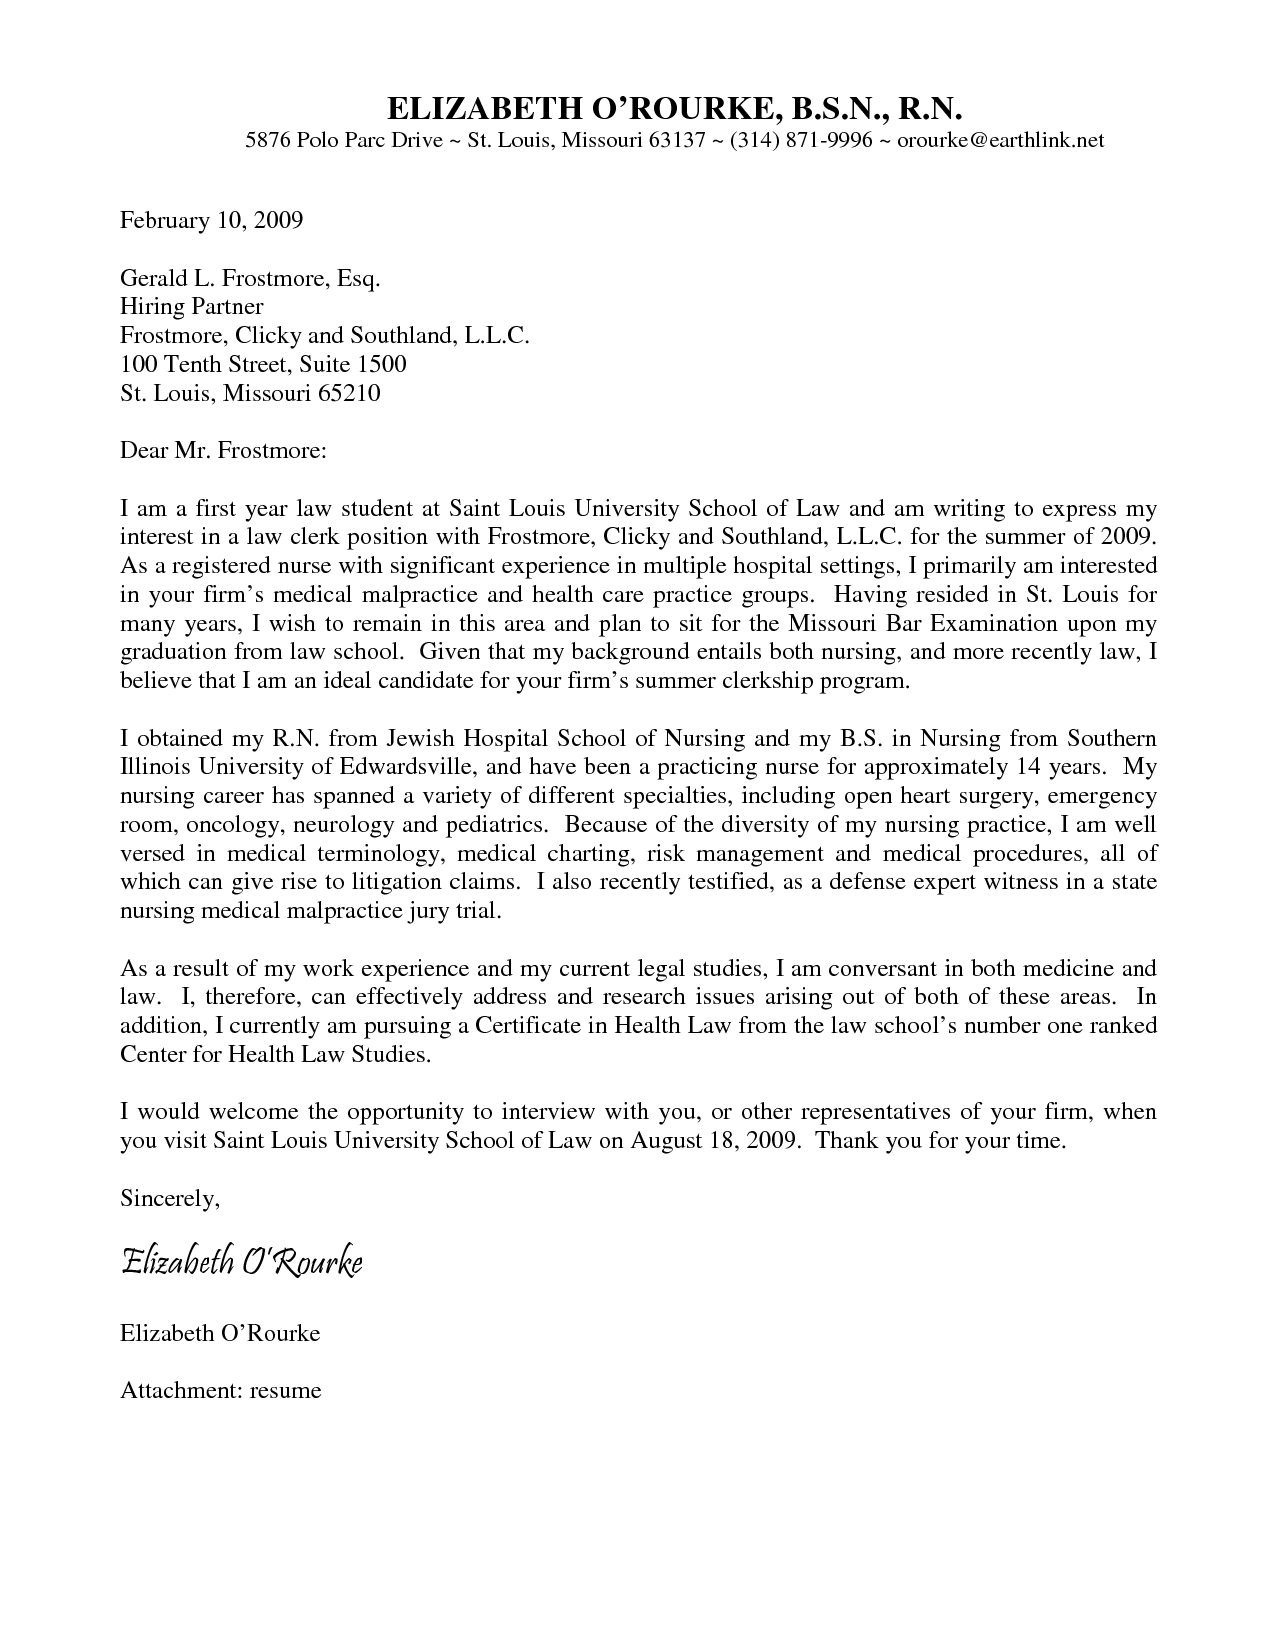 sorority cover letter template example-Letter Interest For Sorority Sample Image collections Letter Format Formal Sample 12-r